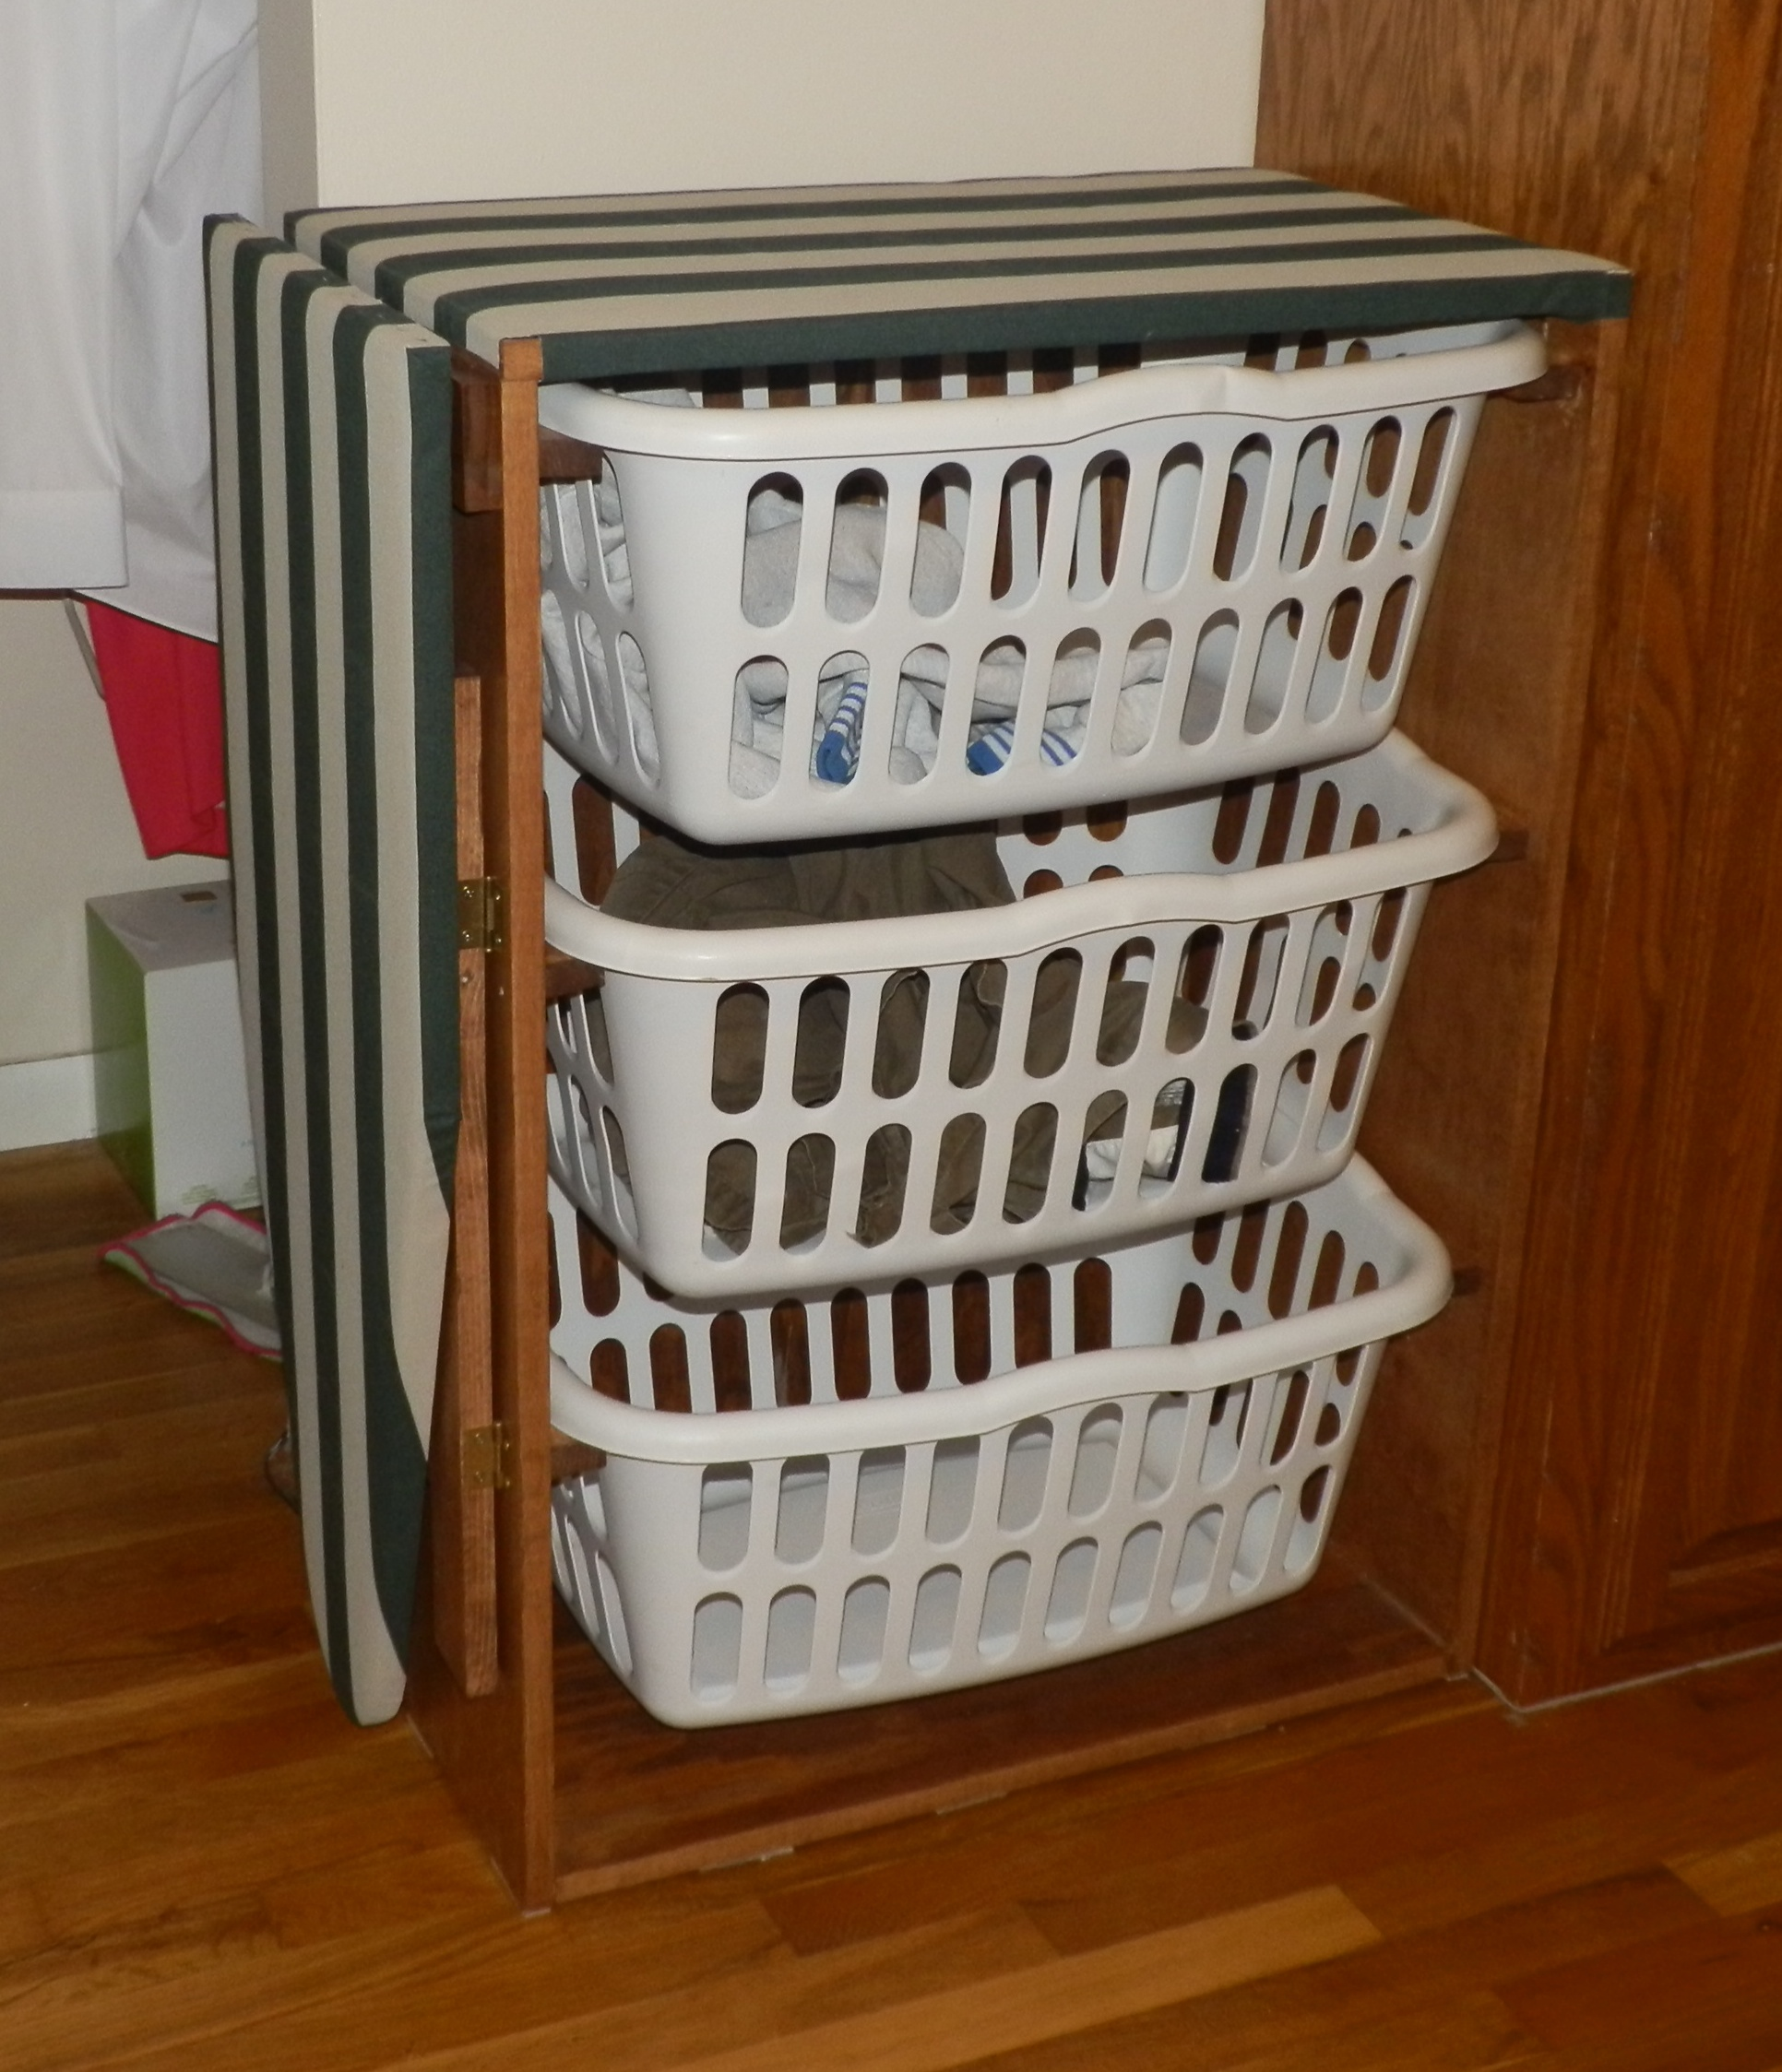 how to build drop down ironing board | Laundry basket dresser with a drop-down ironing board ...